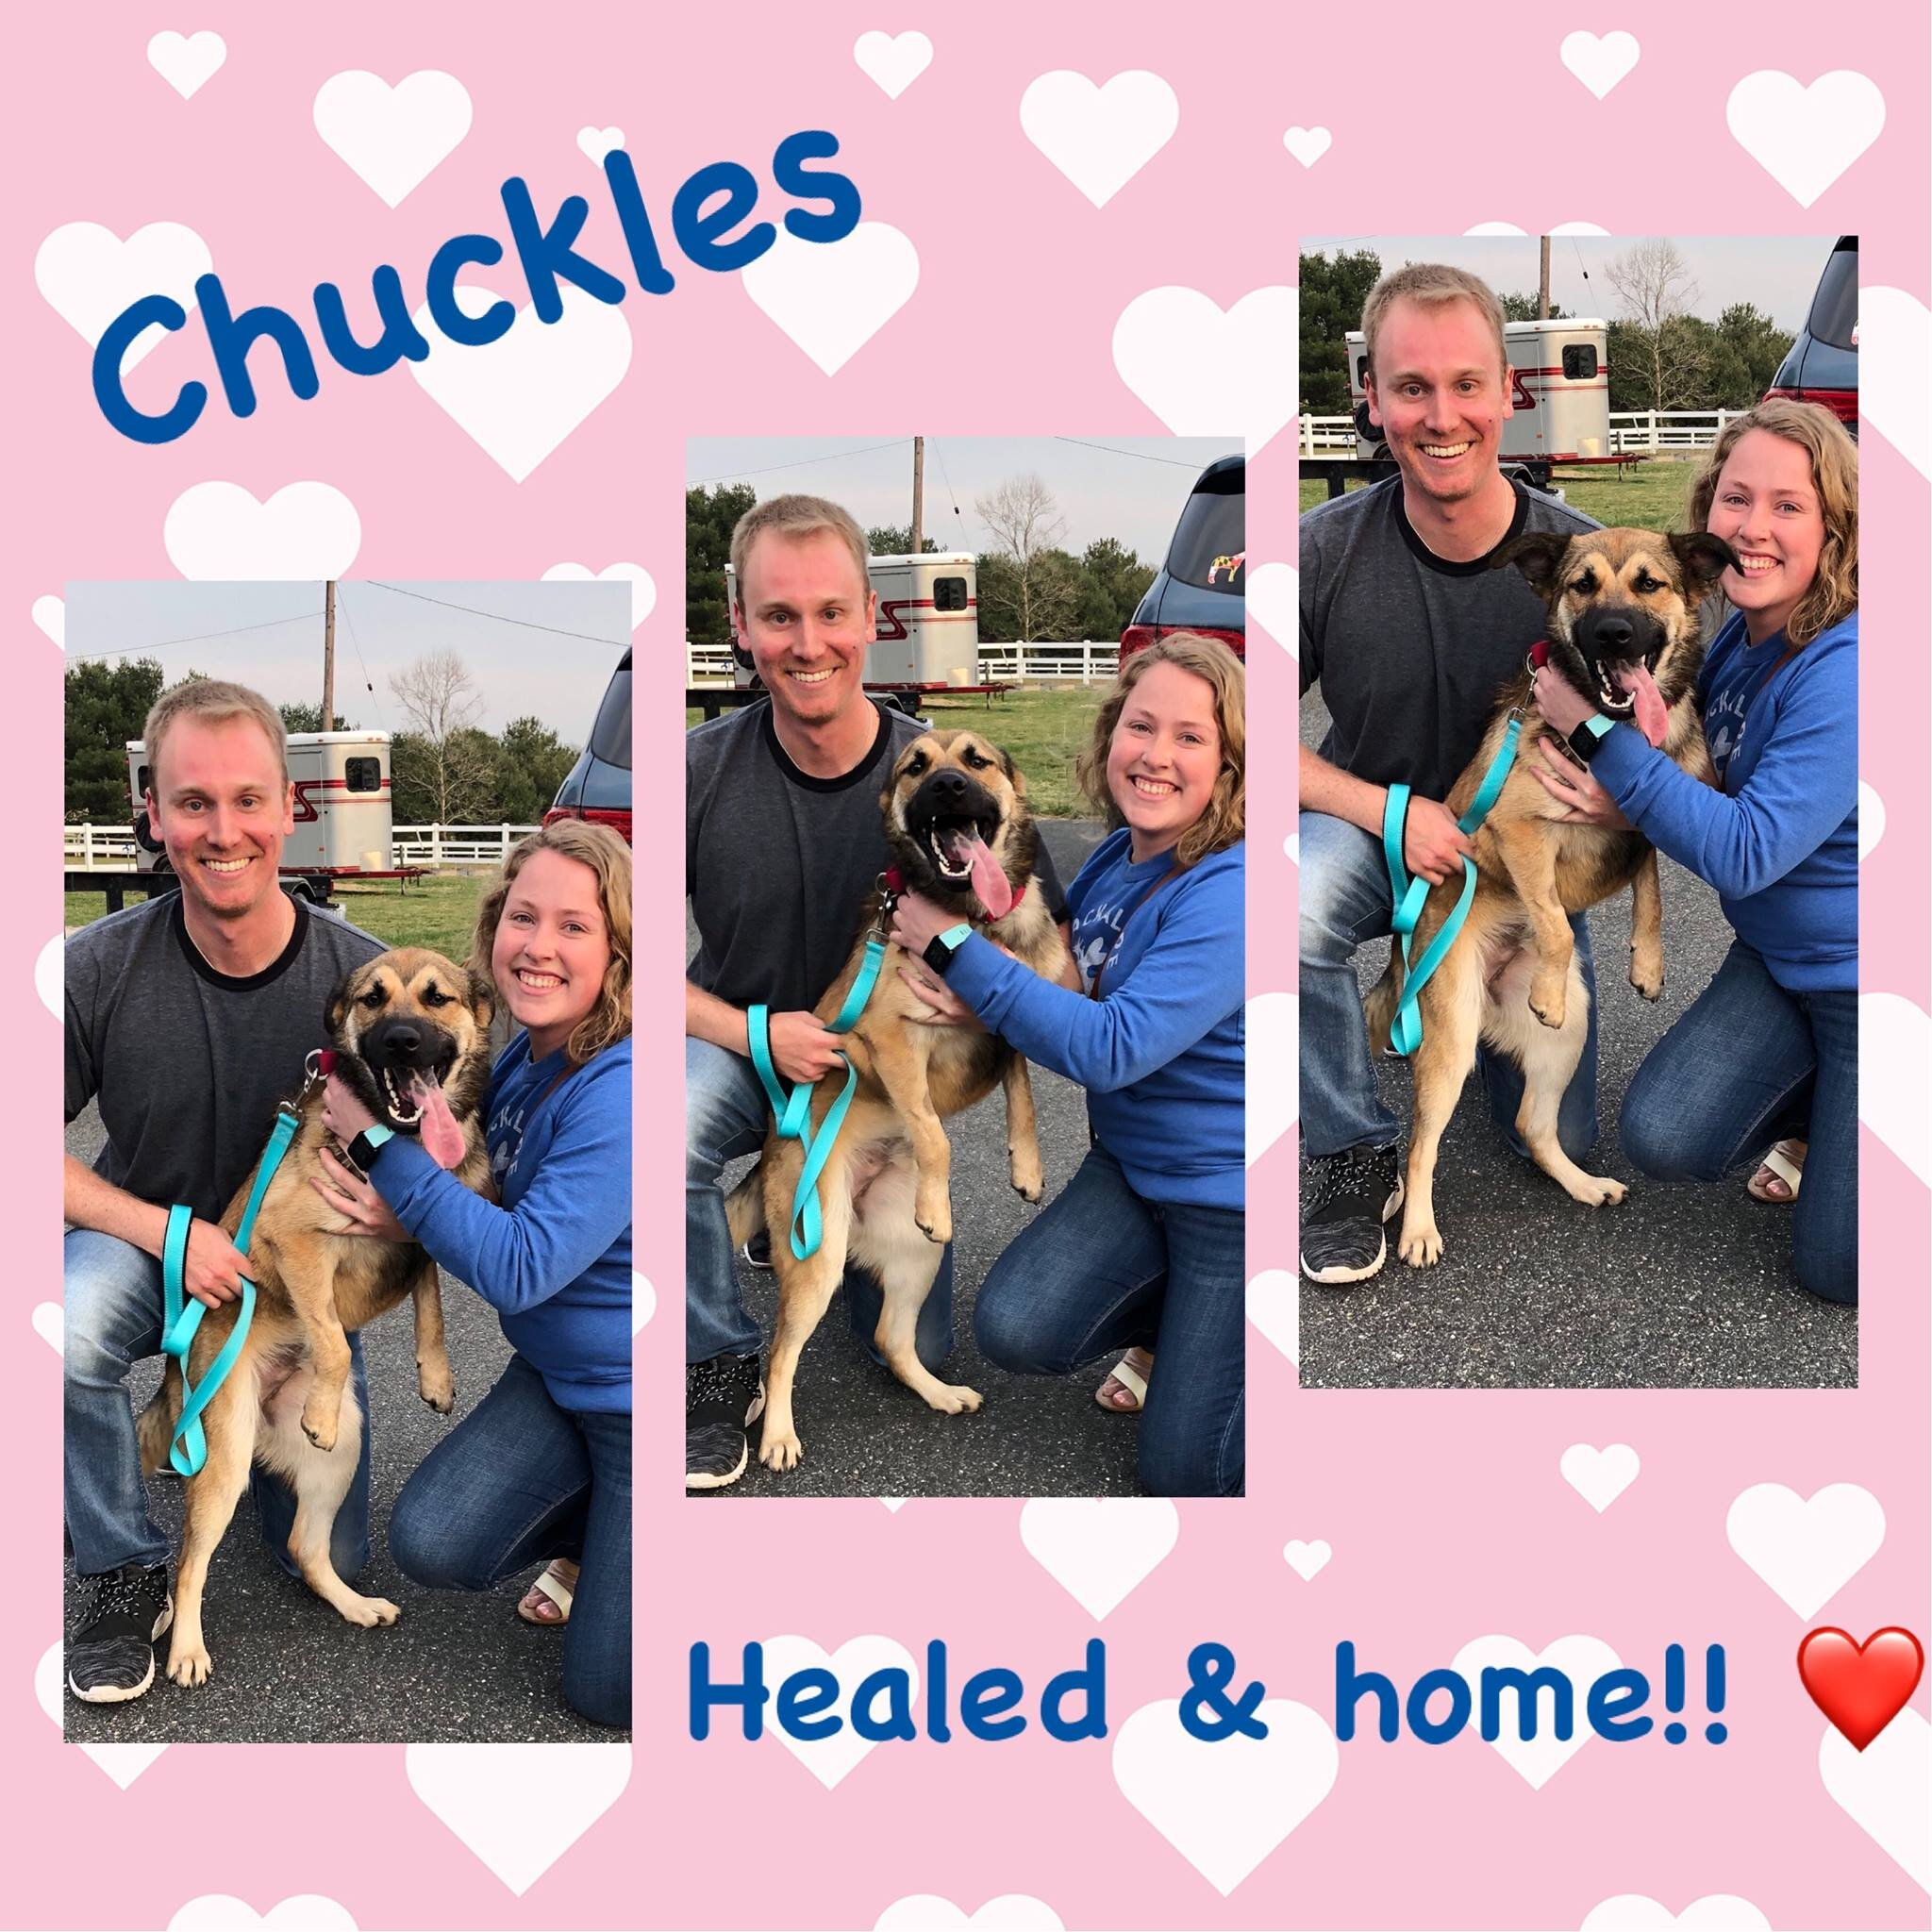 Chuckles is finally healed and in his furever home!!!